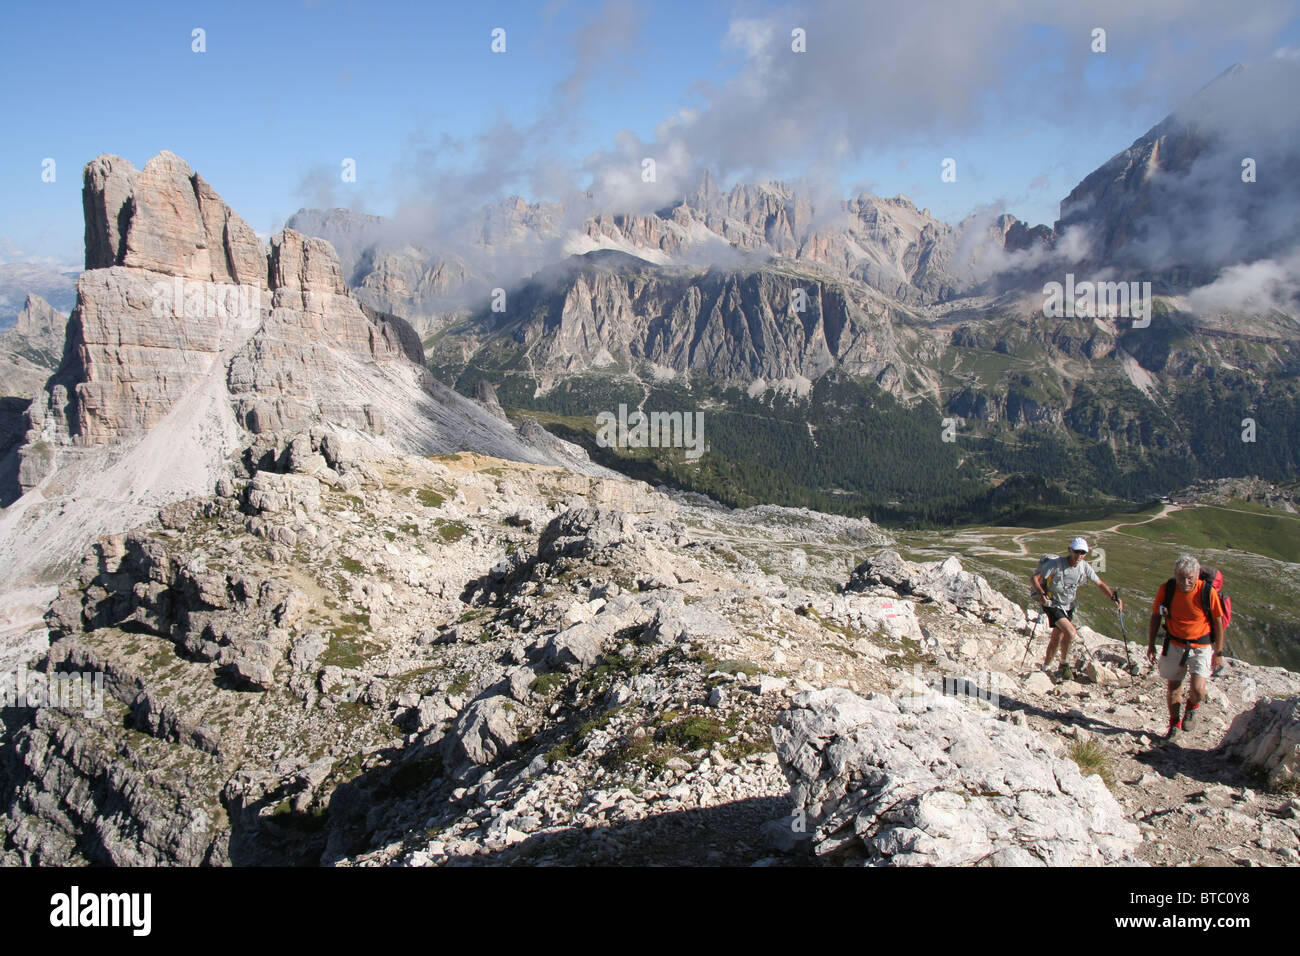 walkers and the Averau mountain in the Italian Dolomites - Stock Image